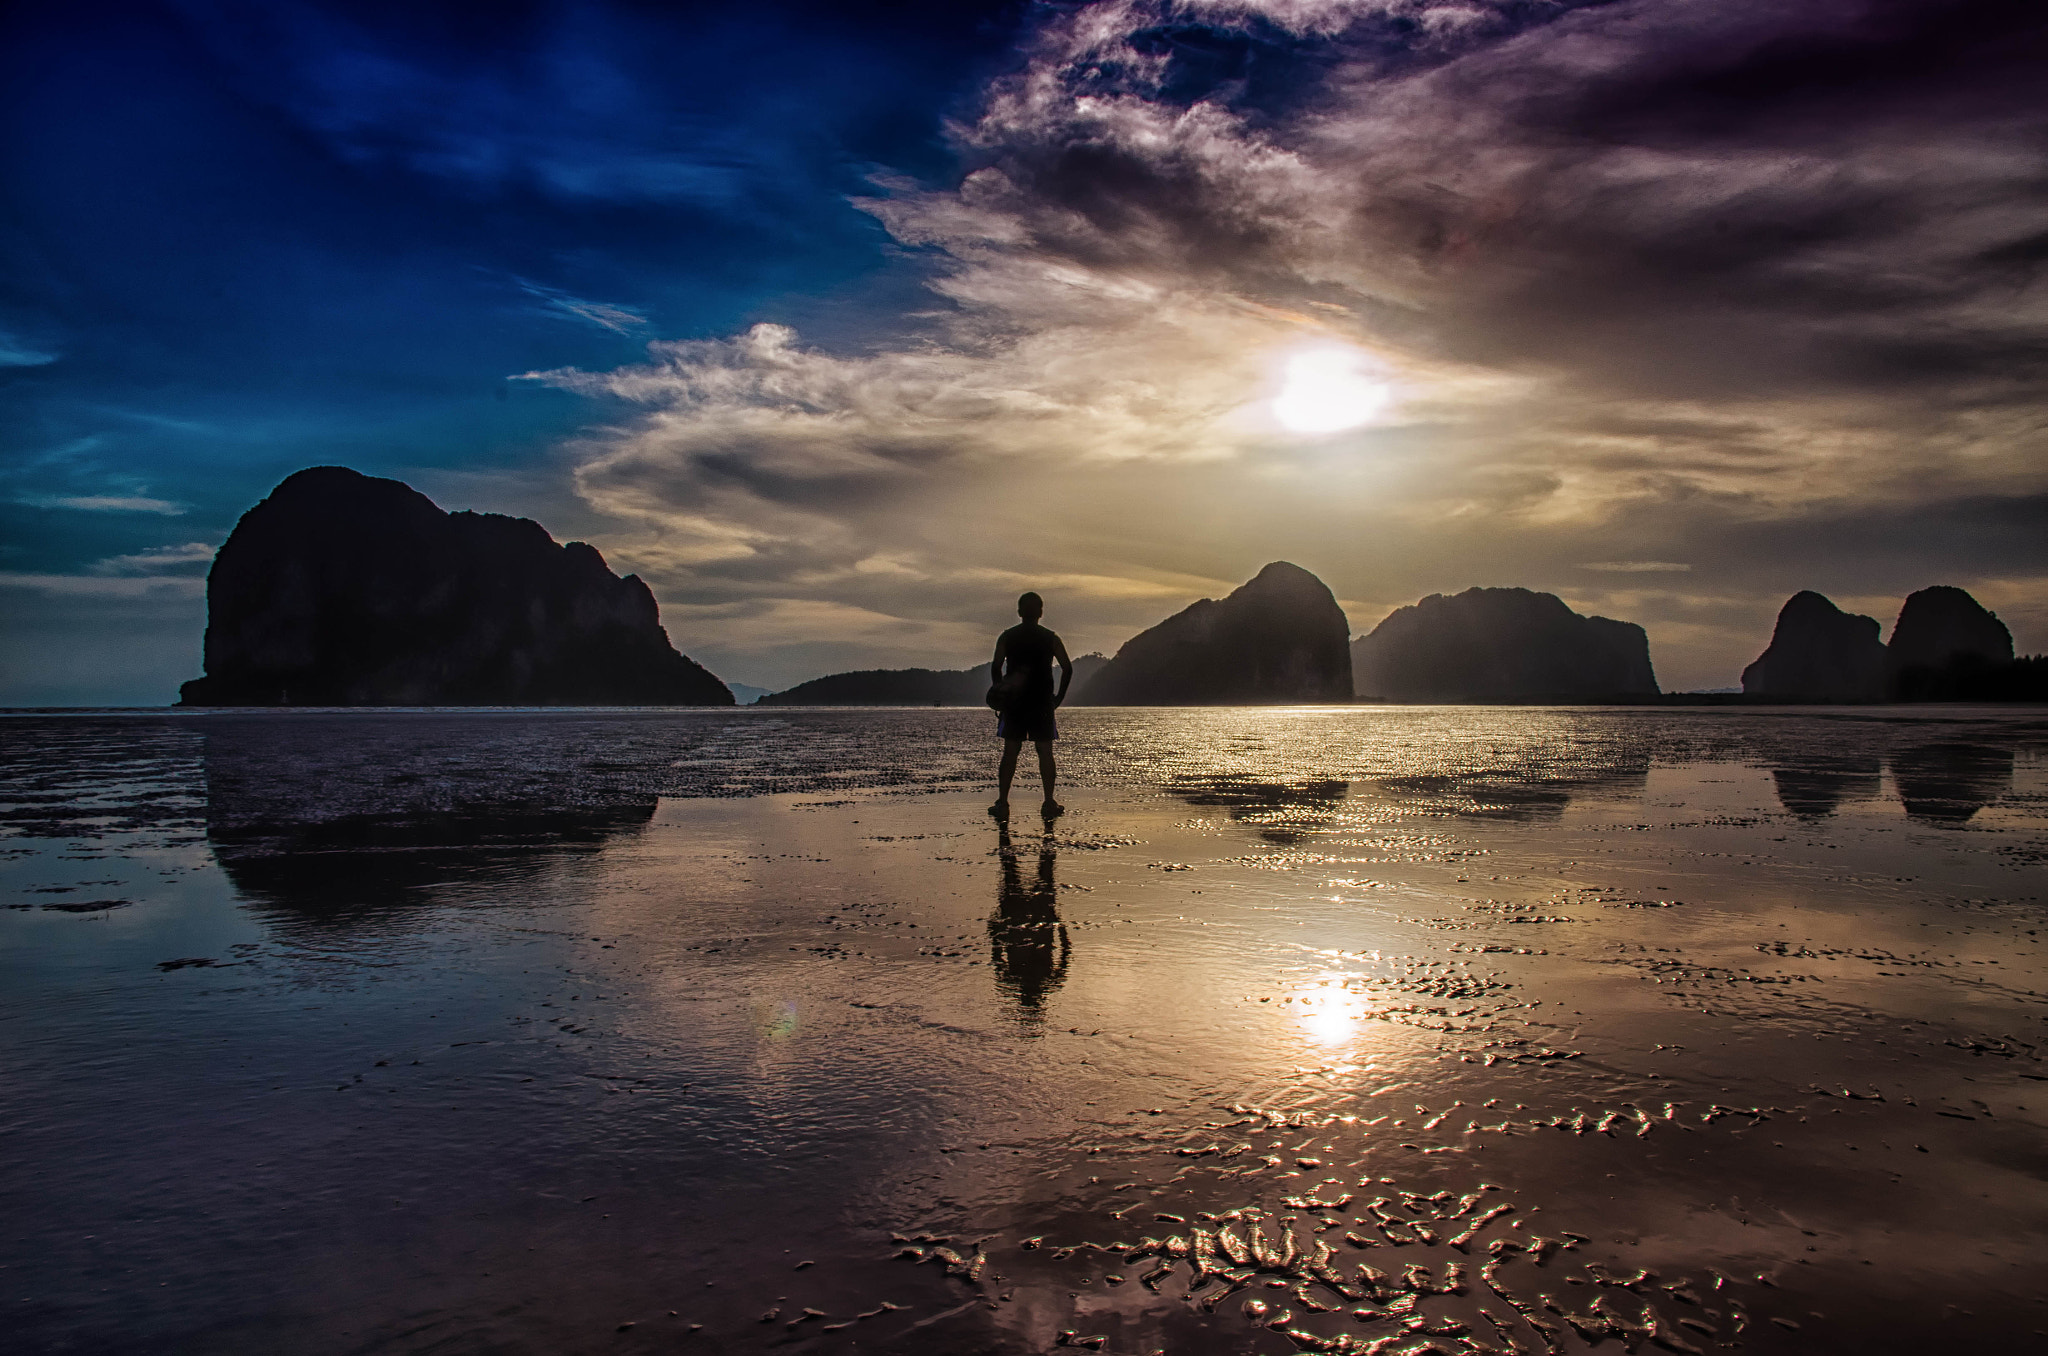 Photograph Alone by Nuang Sangkhsri on 500px